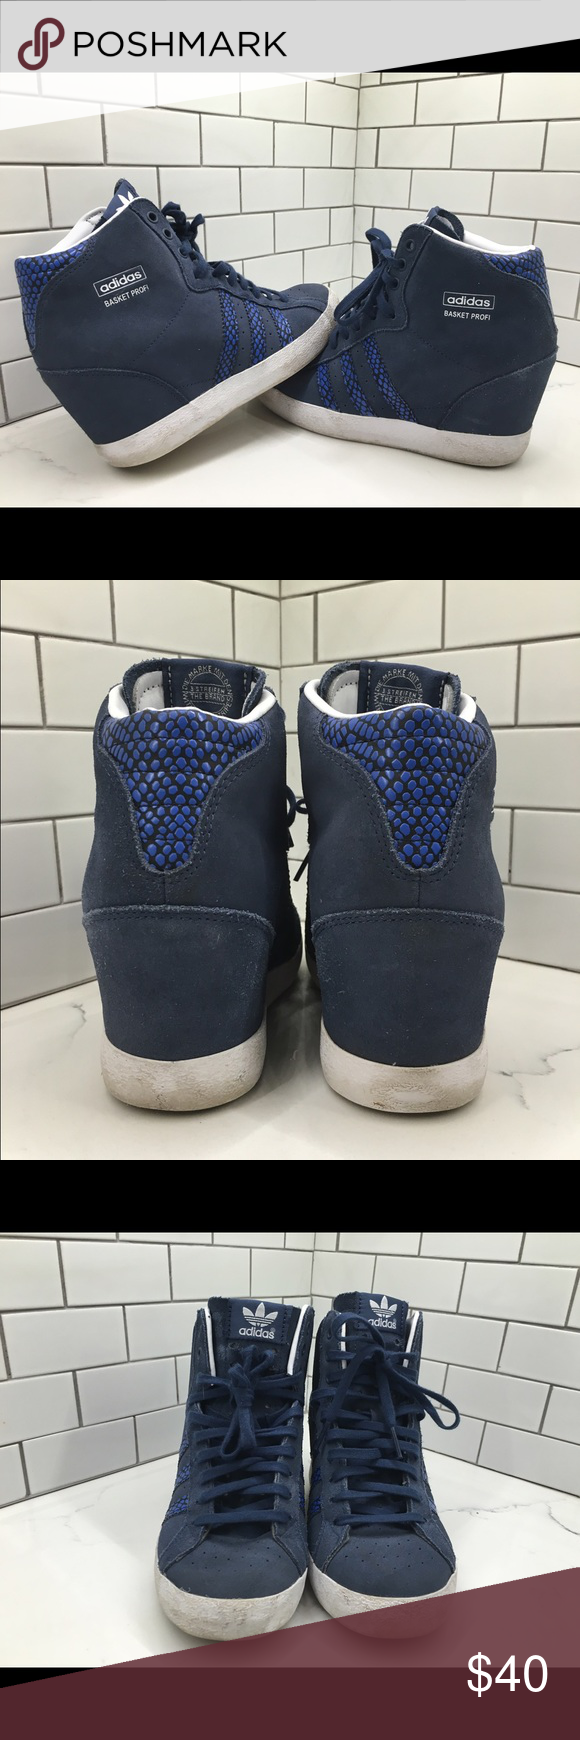 1322889cc02 Adidas Originals Basket Profi Up Wedge Sneakers Used only a Few Times